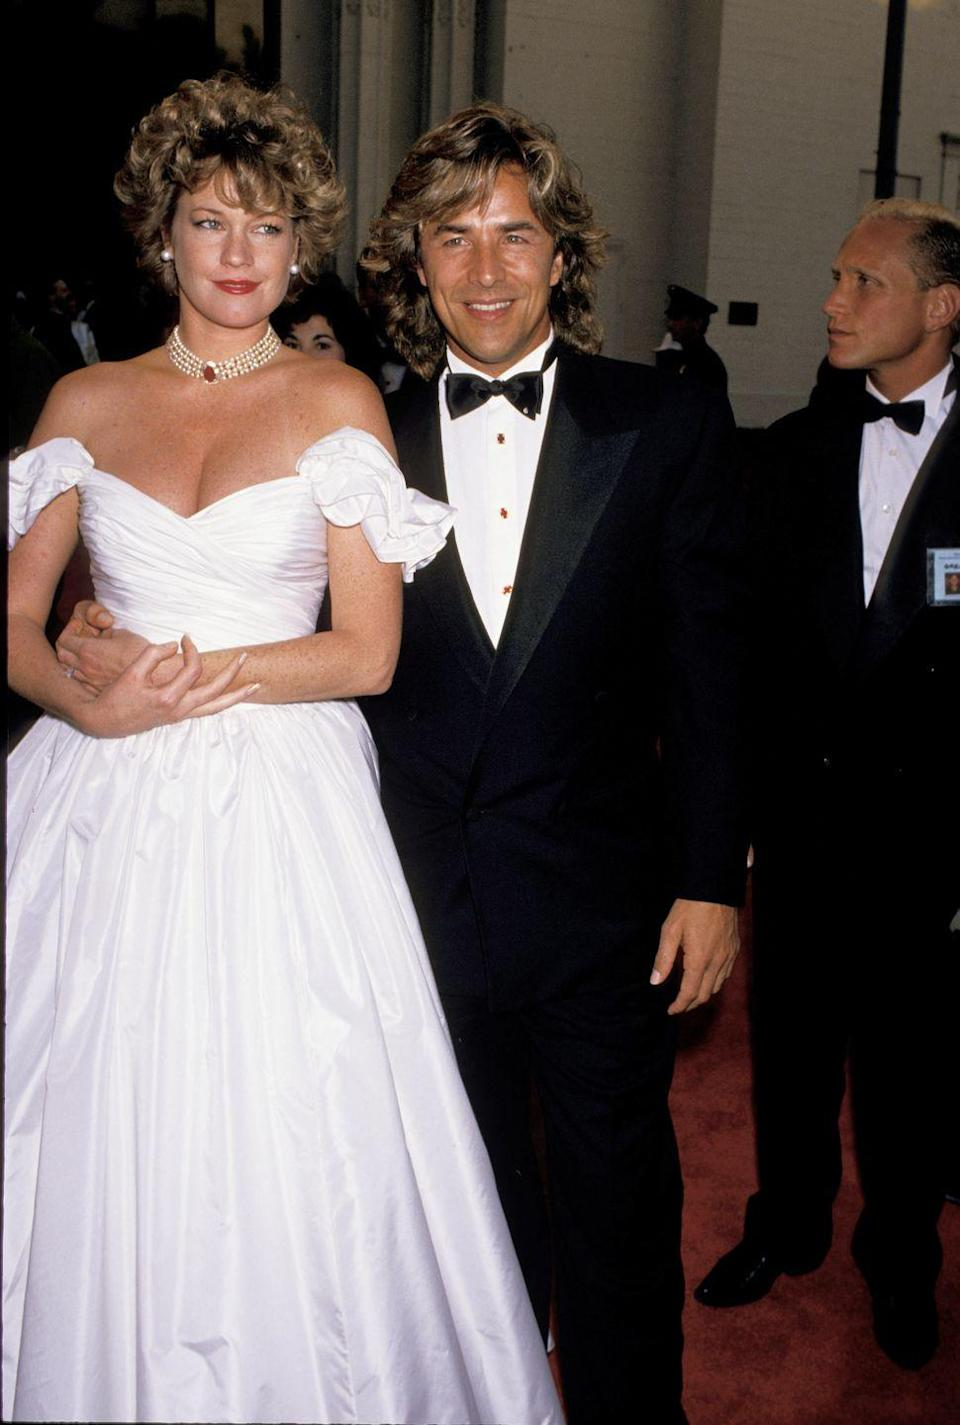 <p>The actress glowed in a white off-the-shoulder ballgown and pearl choker alongside then husband Don Johnson. She was nominated for Best Actress in the film <em>Working Girl</em>. </p>